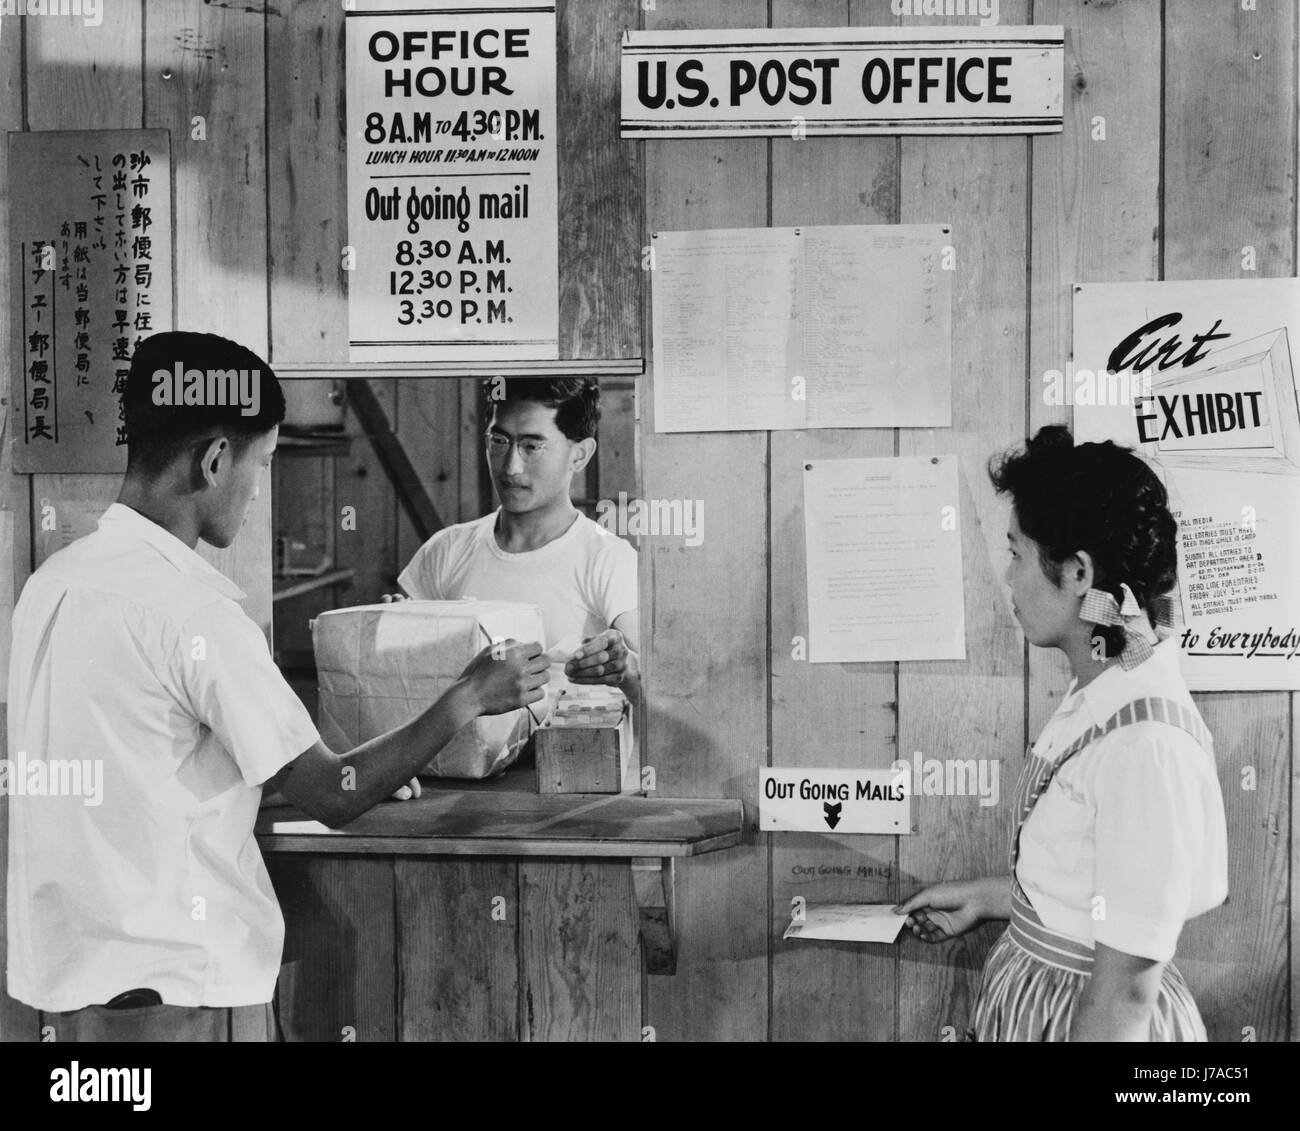 Japanese Americans using postal service, 1942. - Stock Image